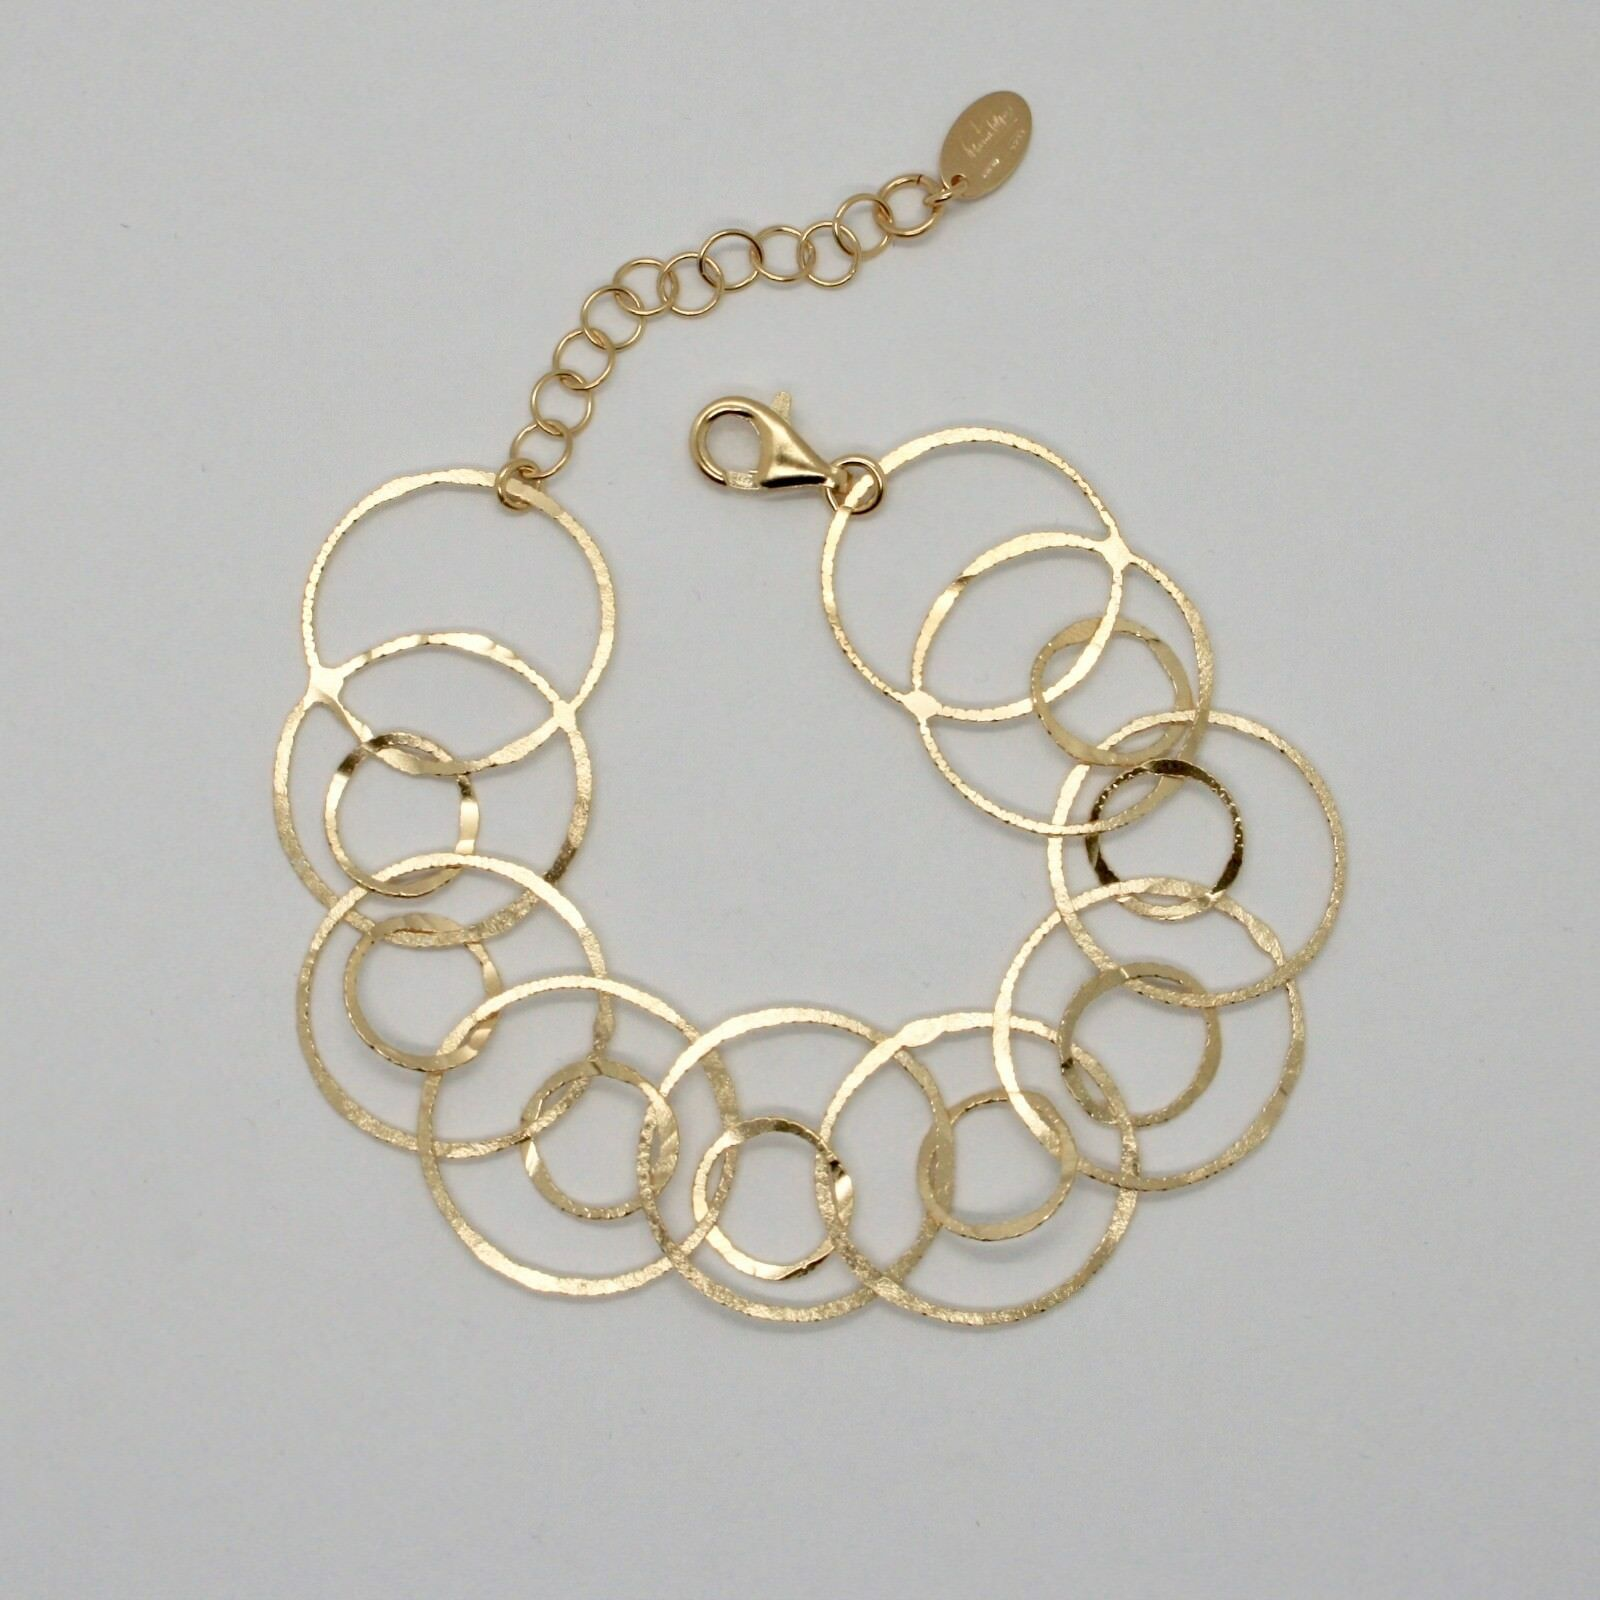 Silver Bracelet 925 Foil Gold Circles Worked by Maria Ielpo Made in Italy -